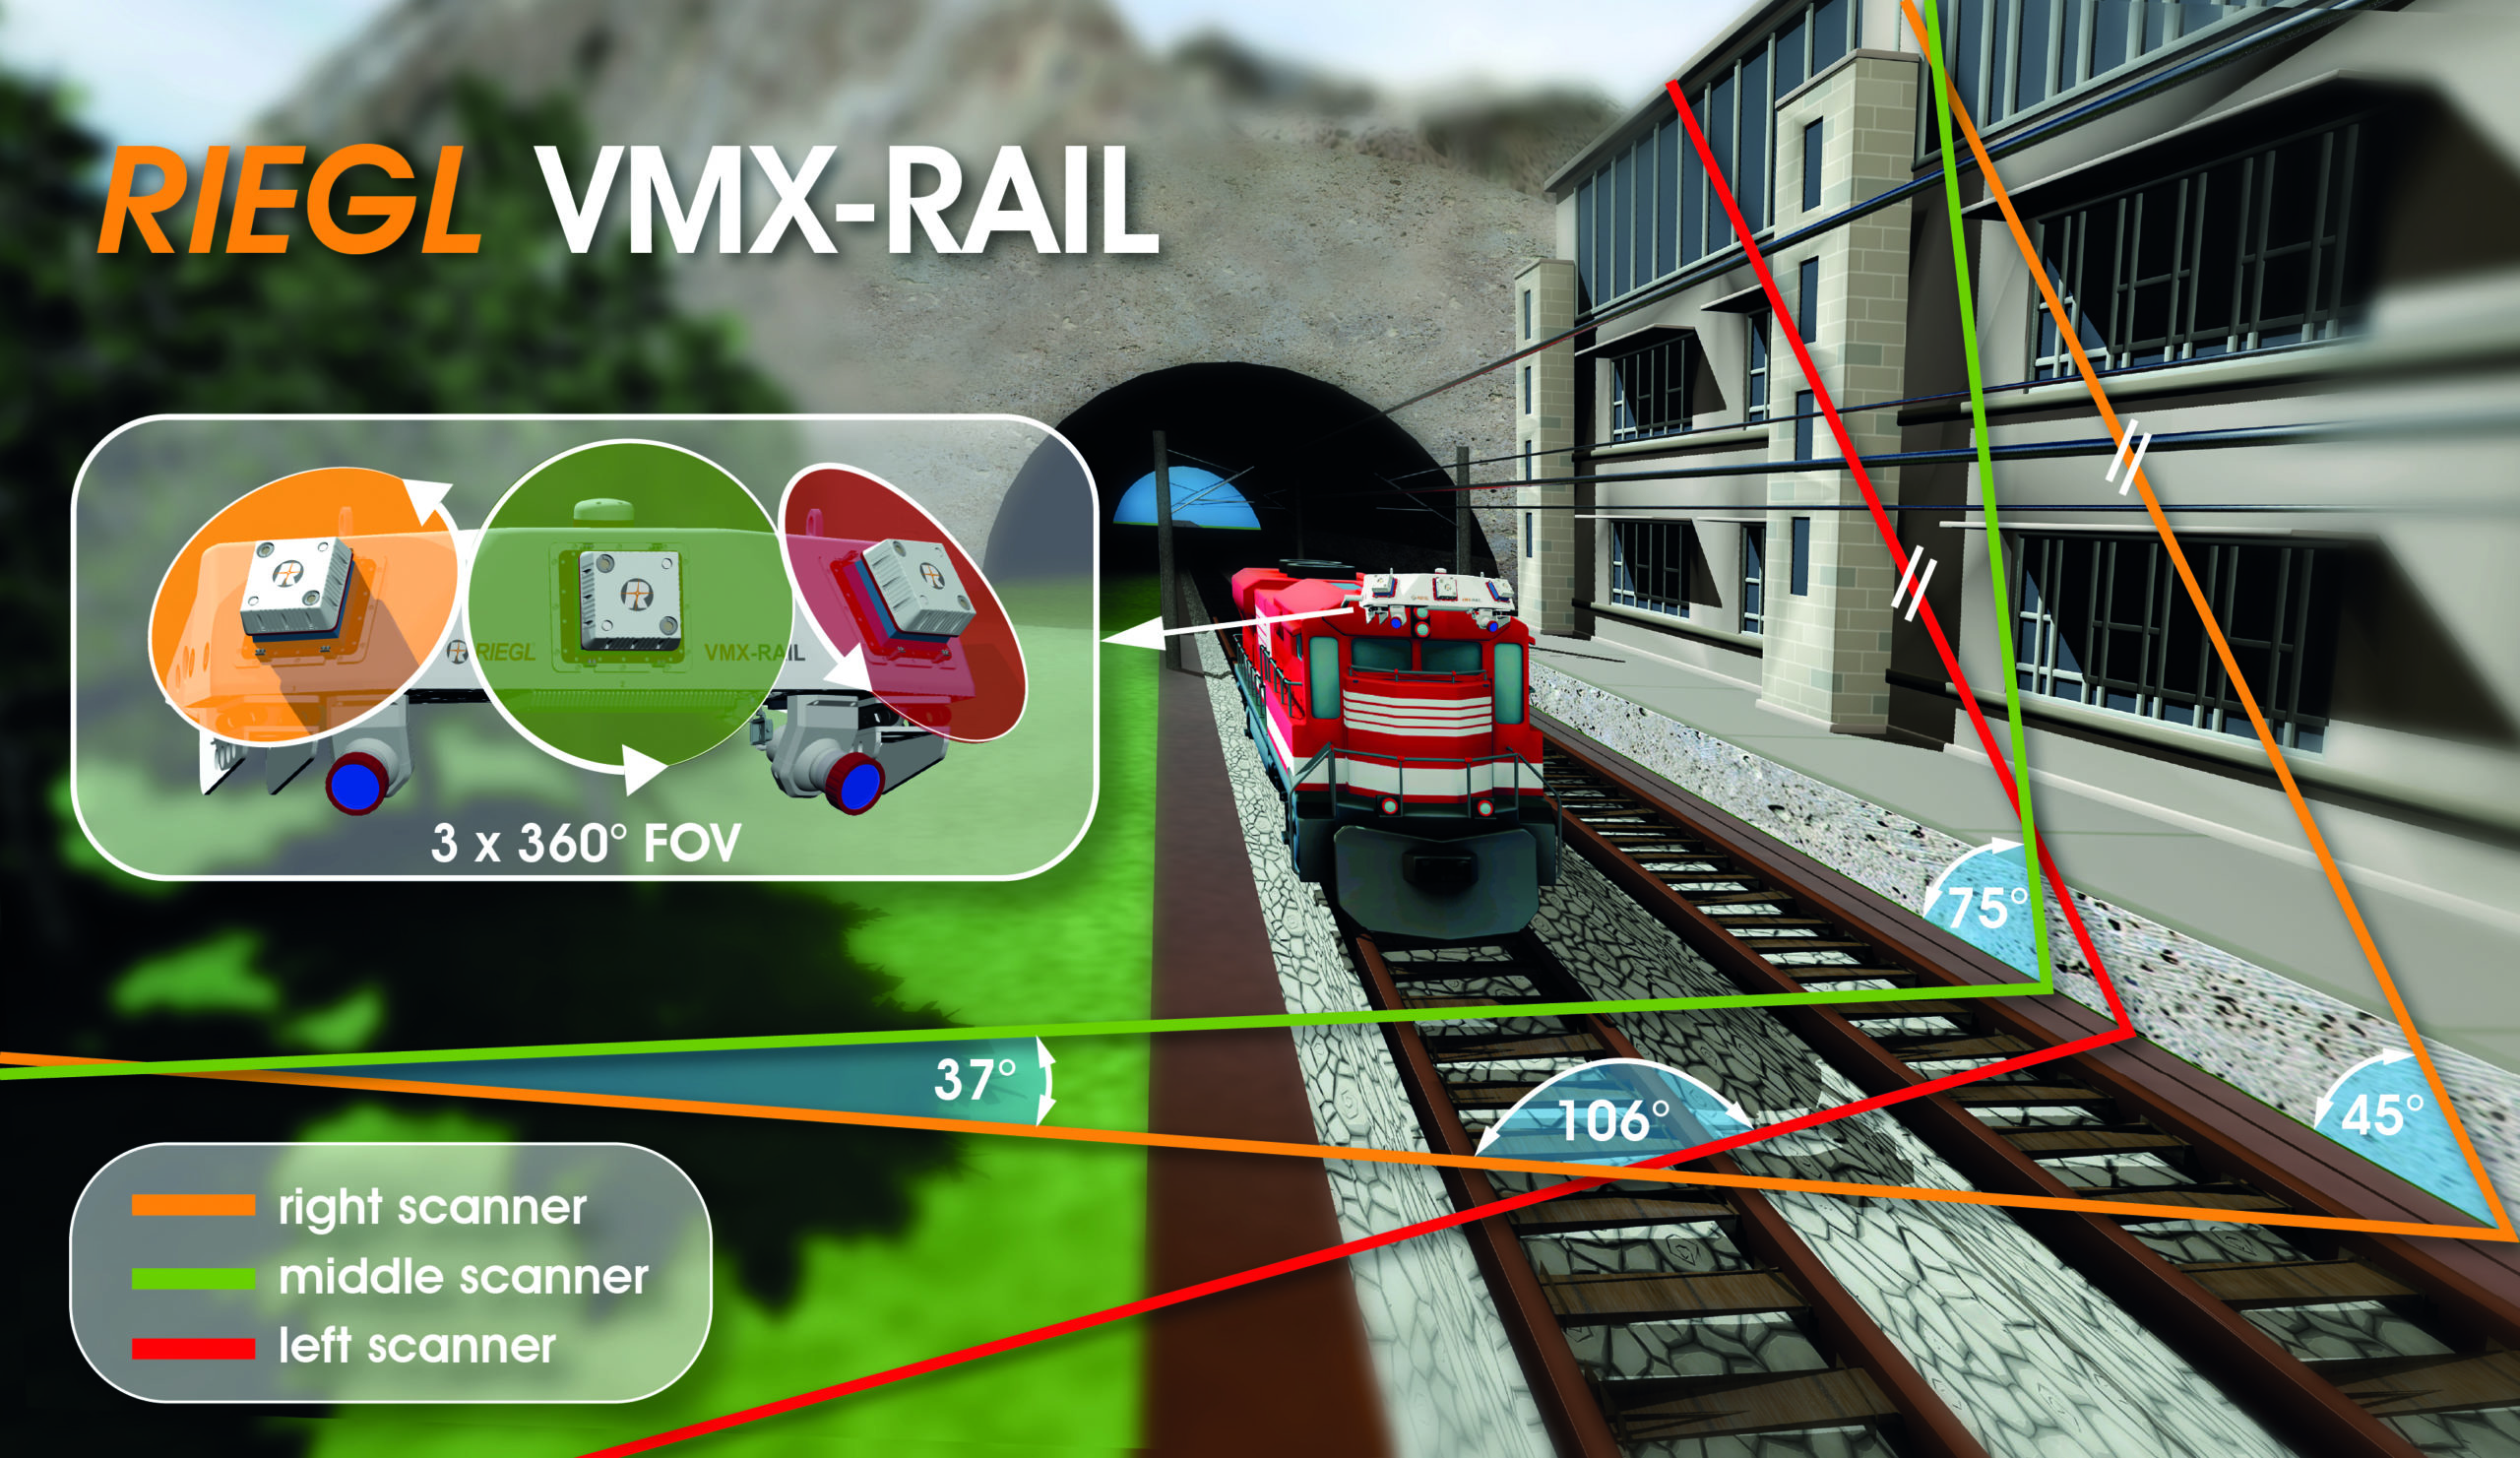 VMX-RAIL: Mobile Mapping Principle